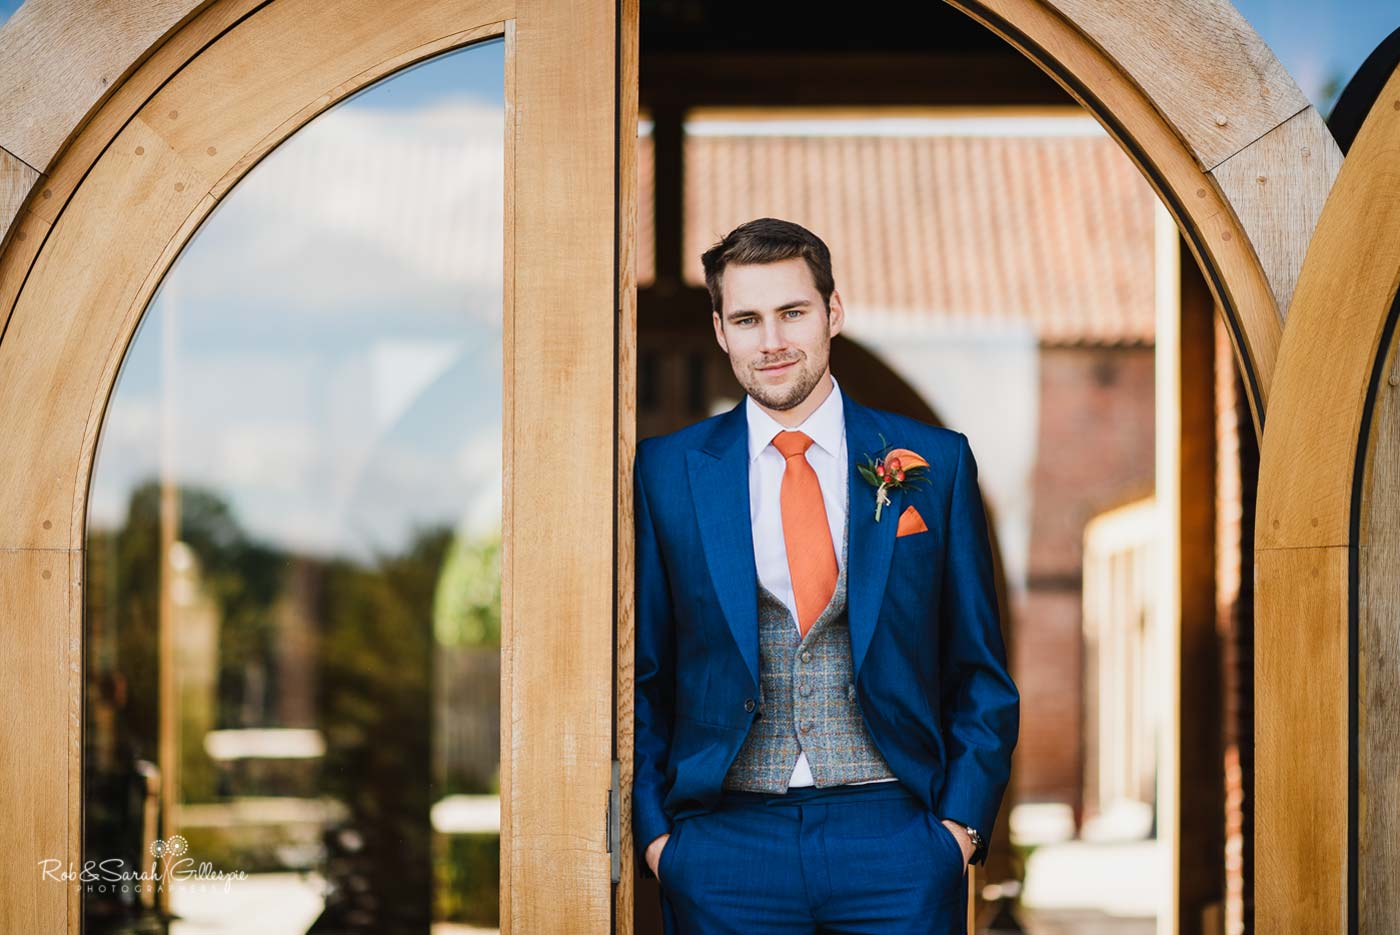 Groom portrait at Hazel Gap Barn wedding